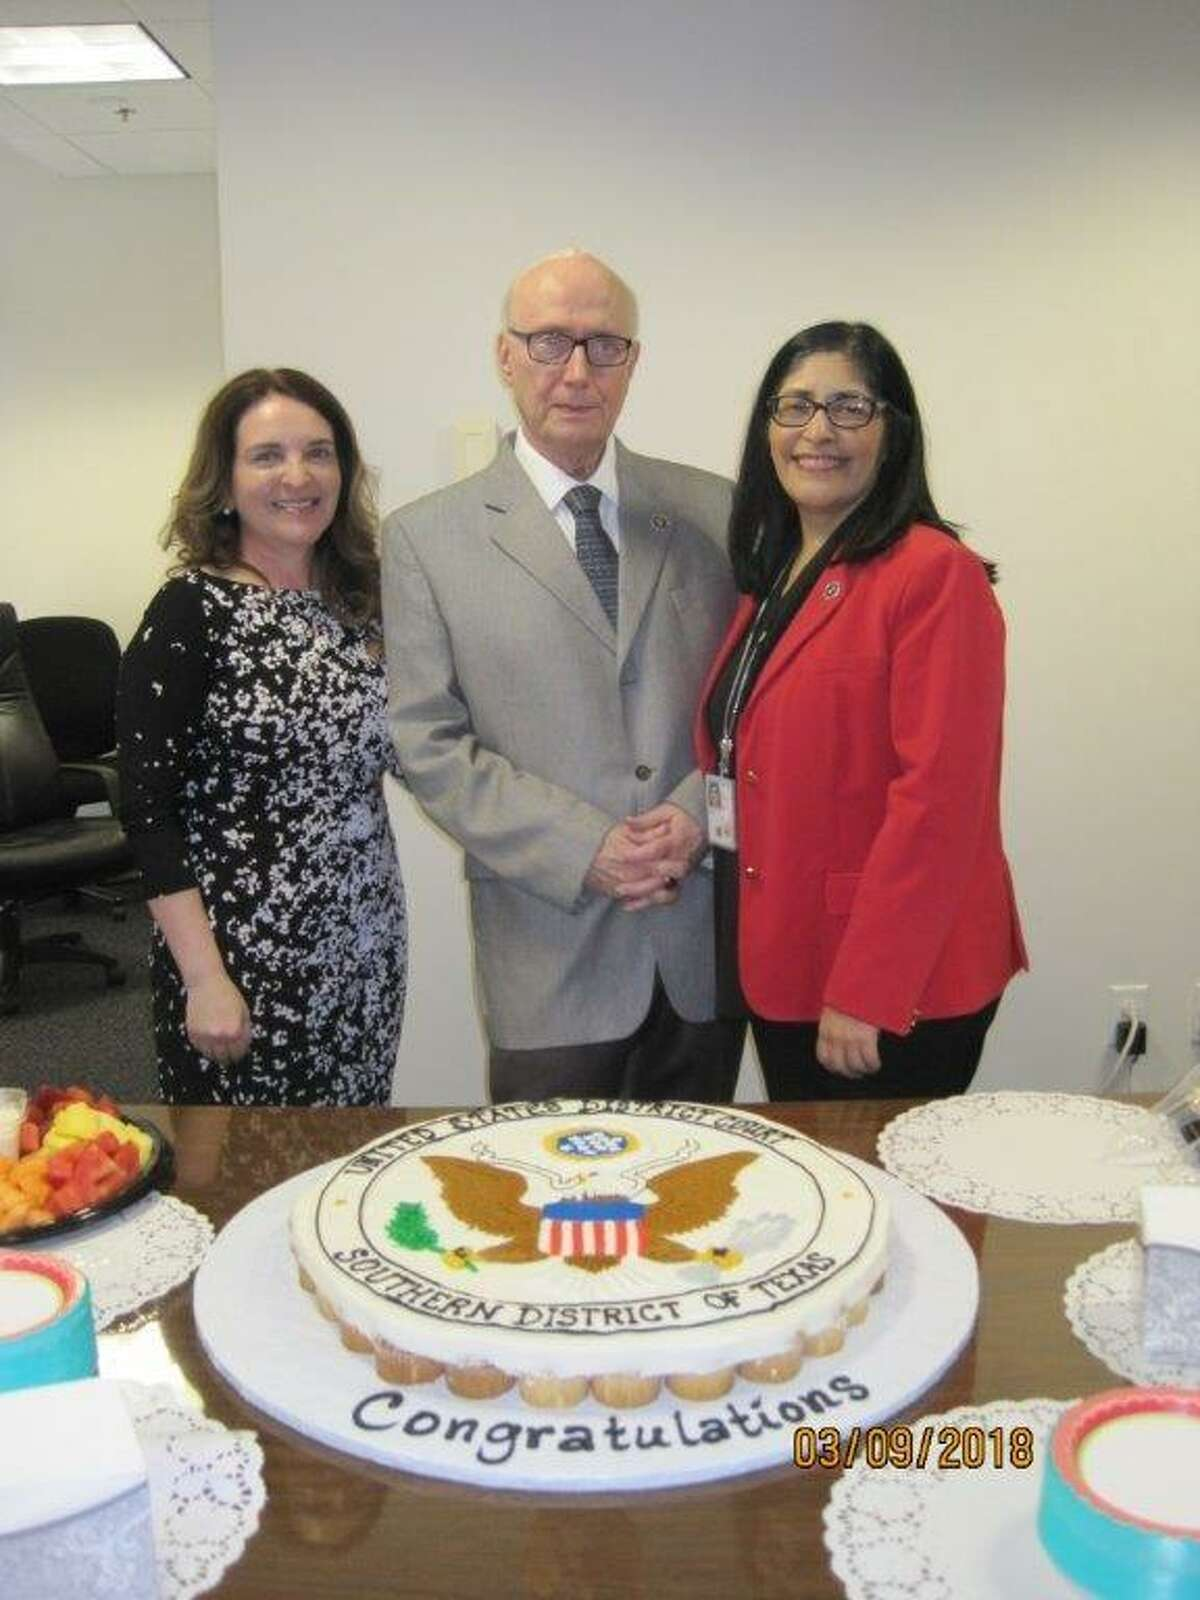 U.S. district judges Marina Garcia Marmolejo, left, and Diana Saldaña pose for a photo with Senior U.S. District Court Judge George P. Kazen at his retirement party on Friday.